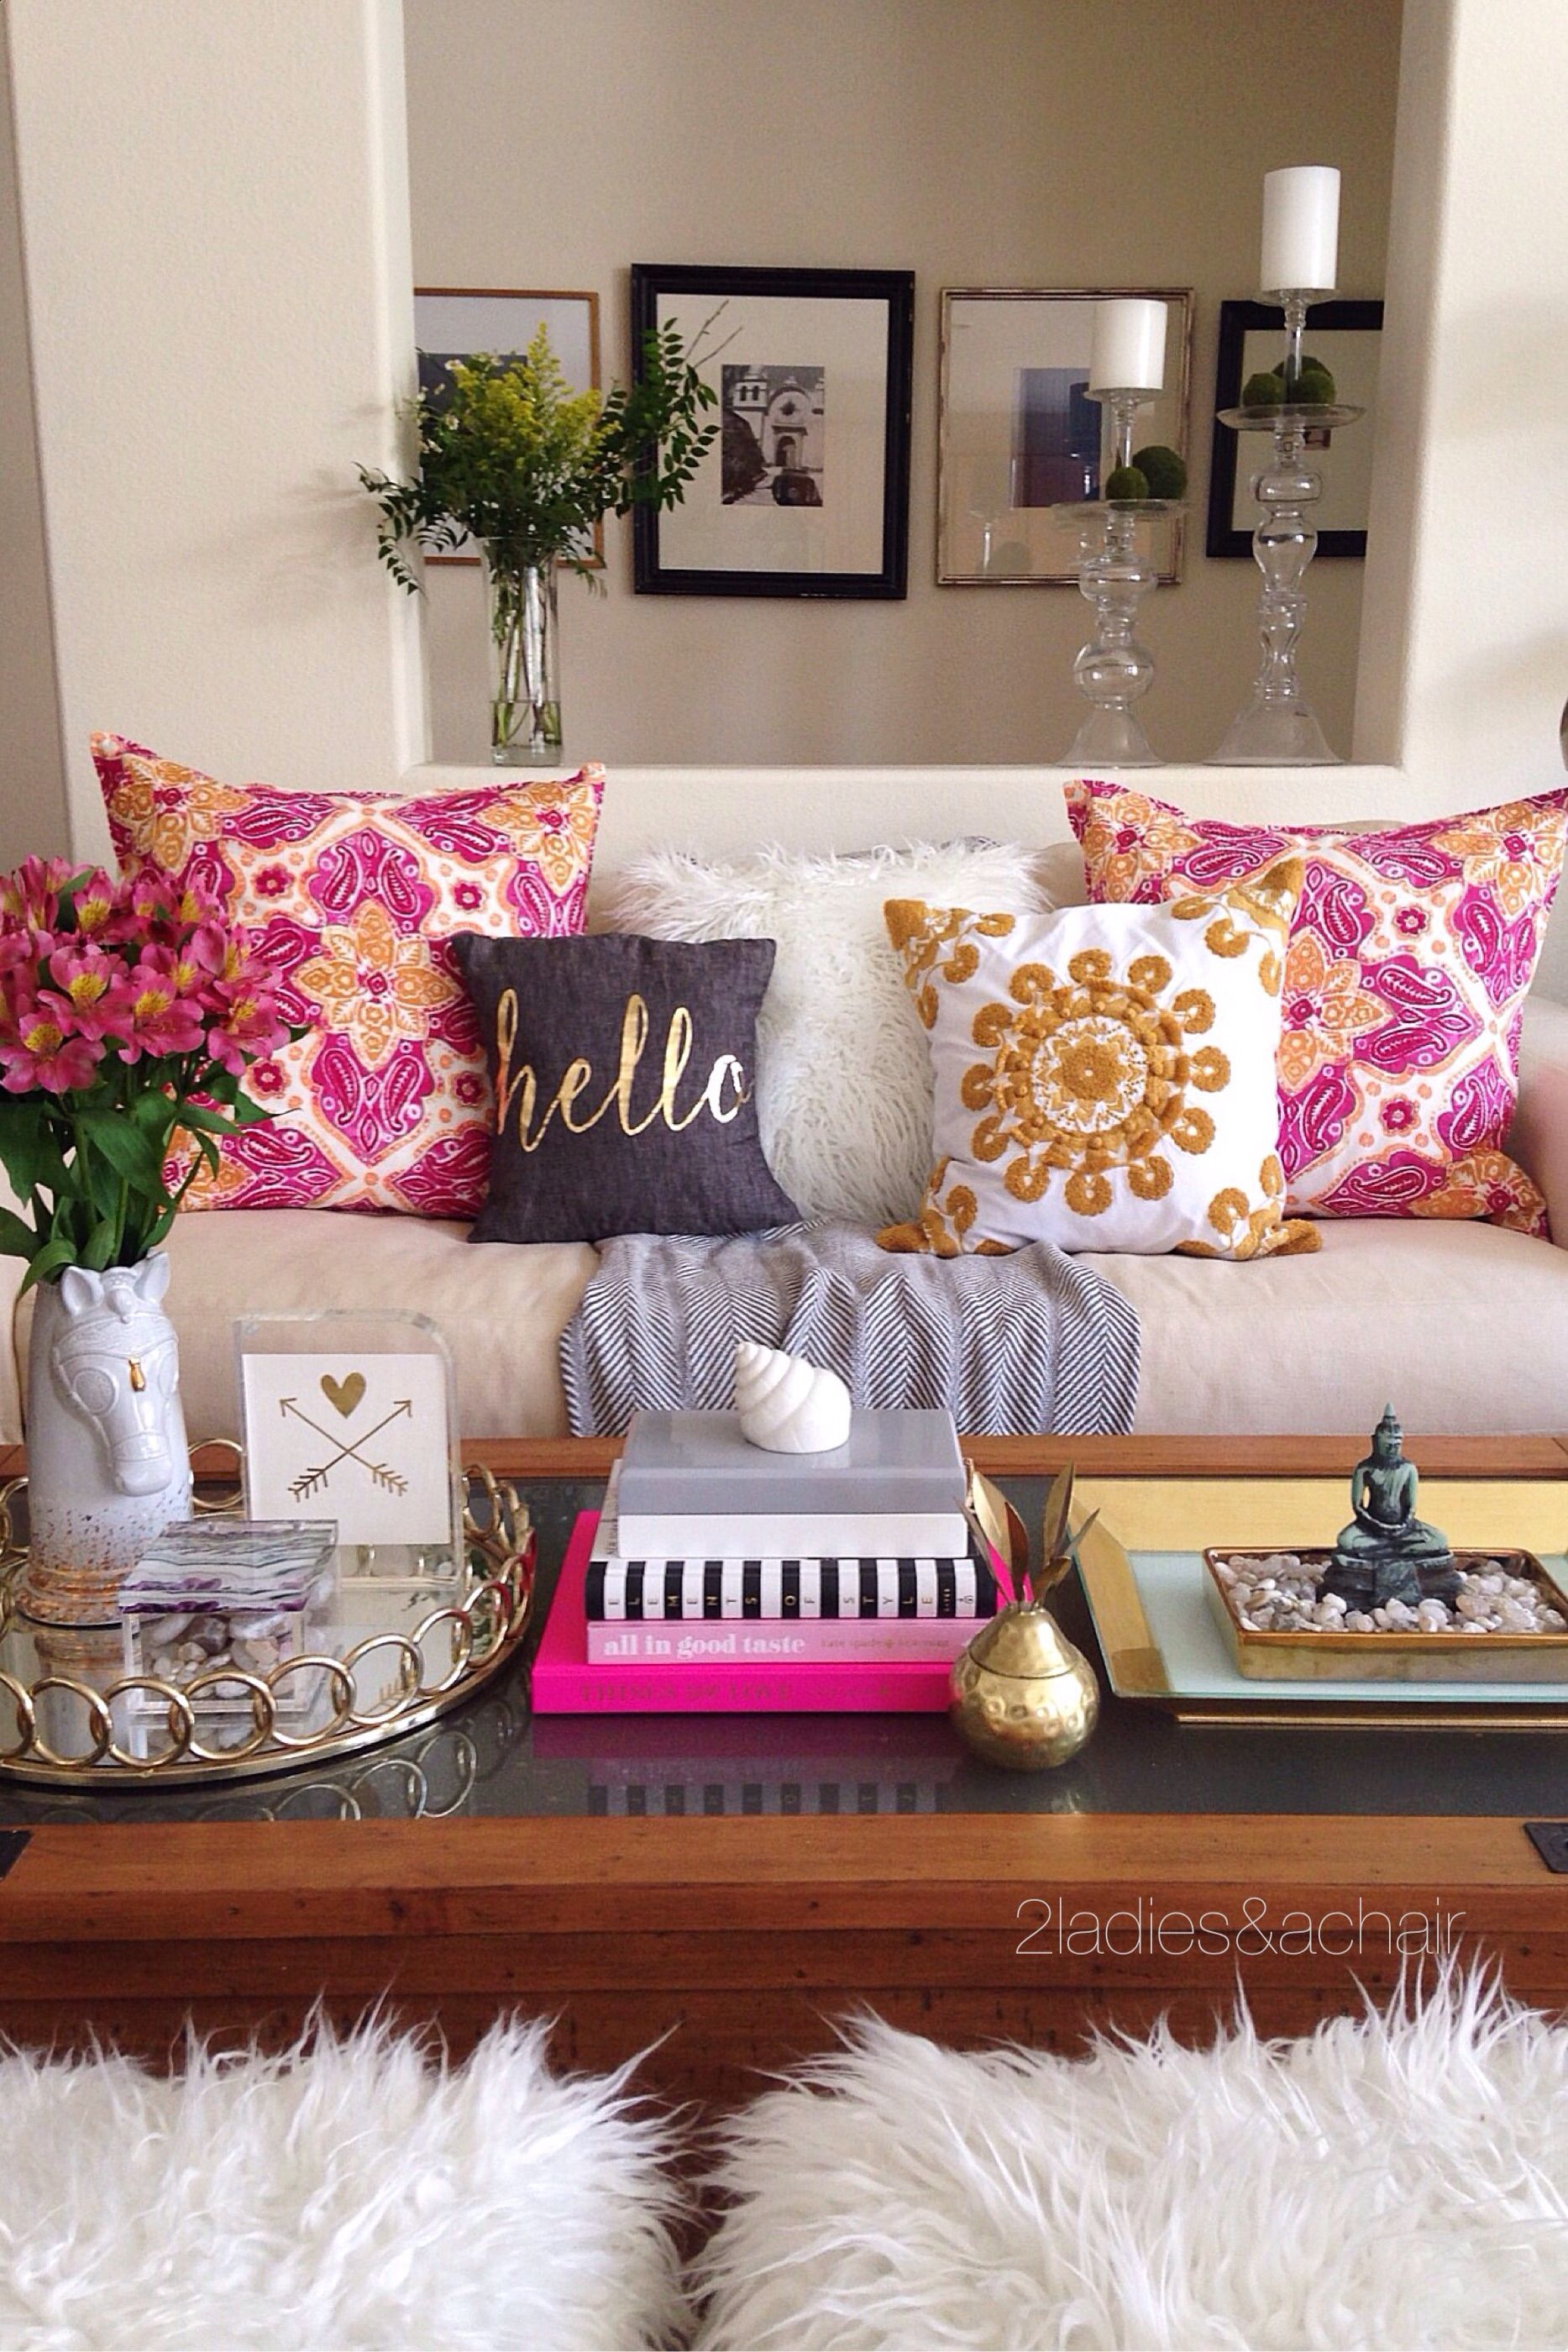 Apr 21 Decorating With Bright Colors. Fluffy PillowsApartment Bedroom DecorDecorate  ... Part 48